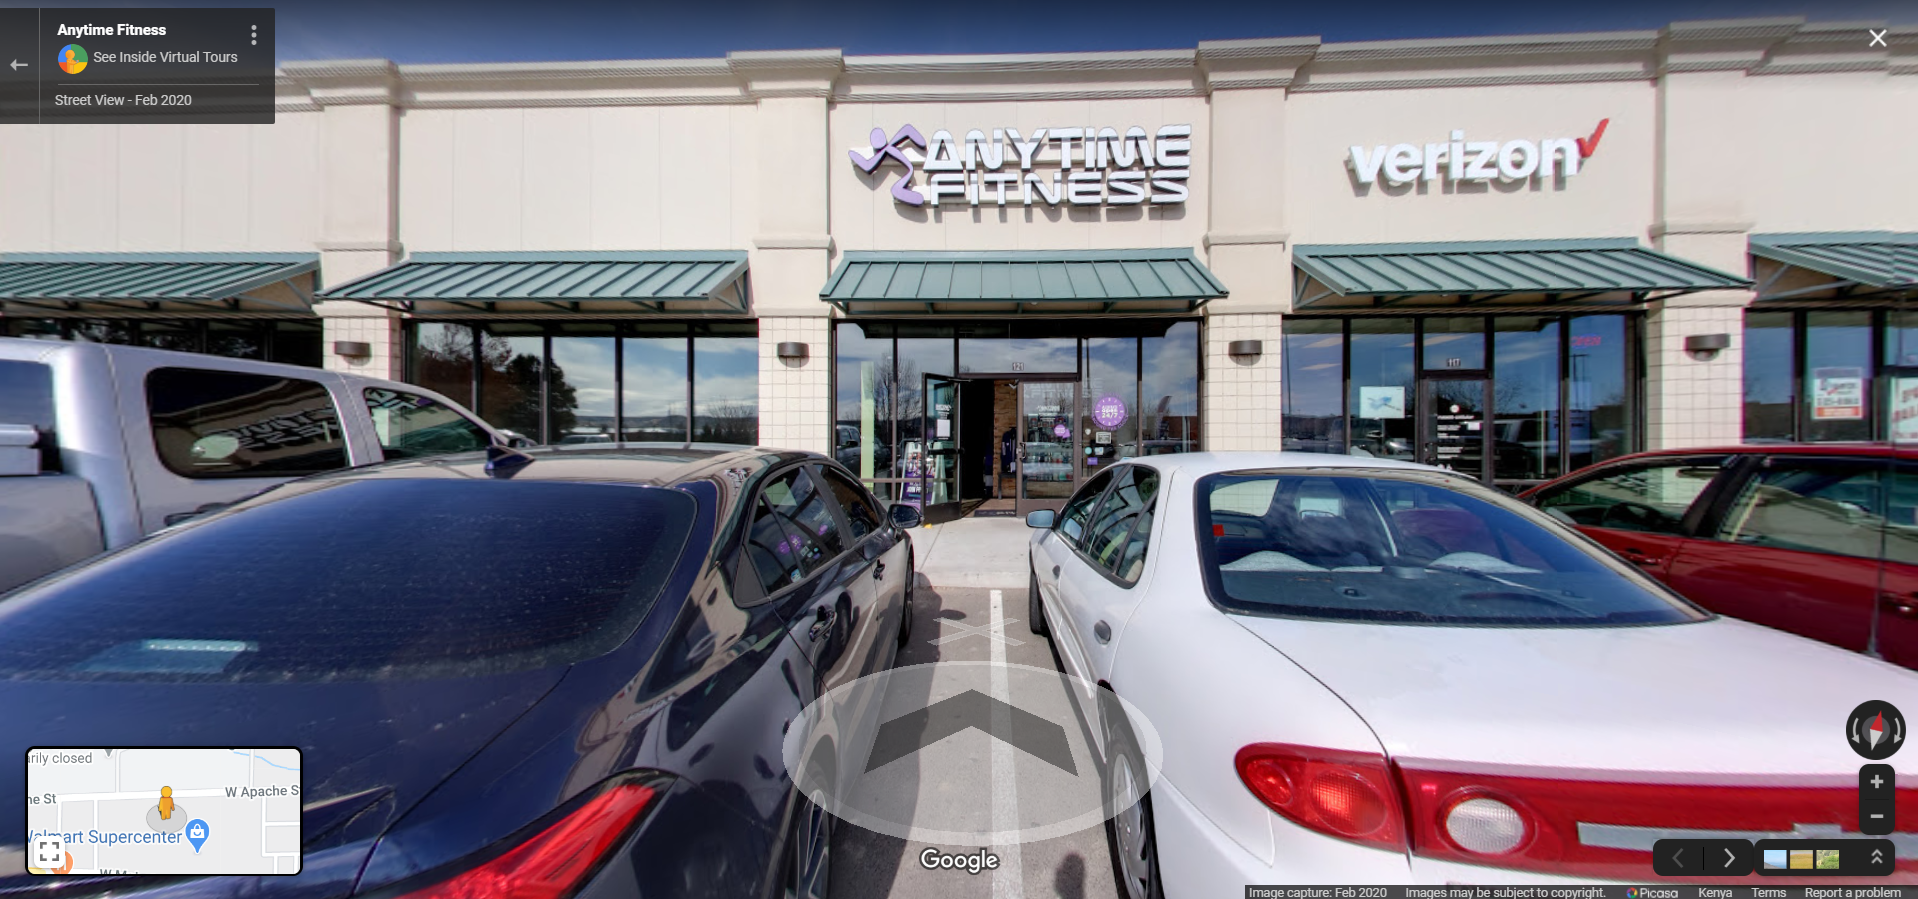 Anytime Fitness - W. Apache St., Farmington